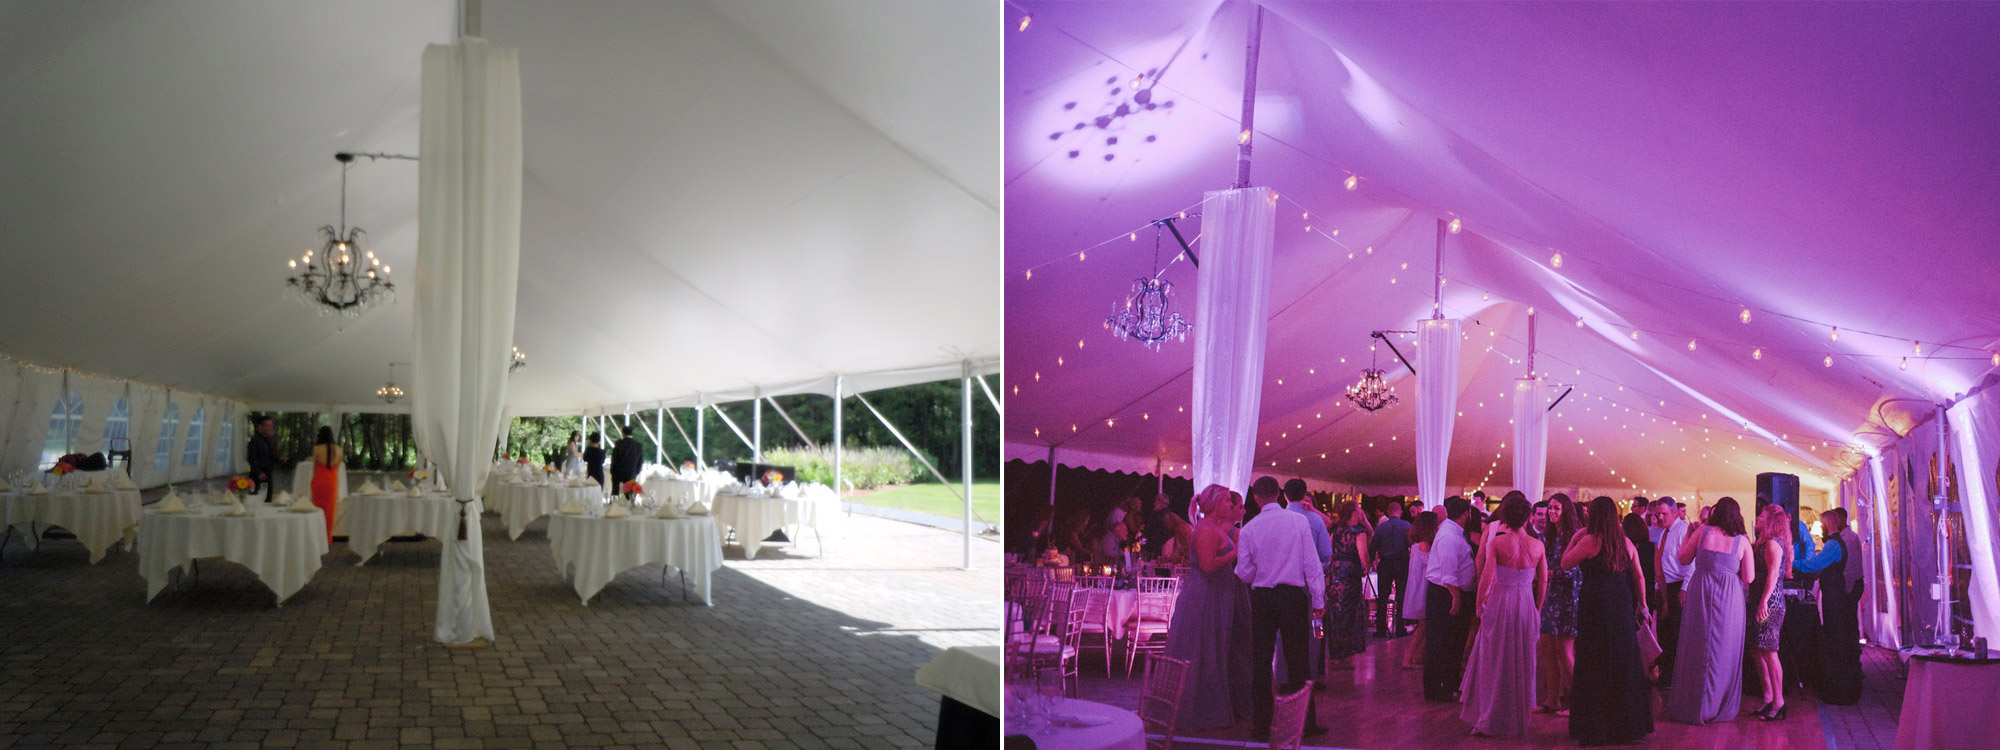 Before and after pink wireless uplighting was implemented at the Tent at The stevens estate at osgood hill